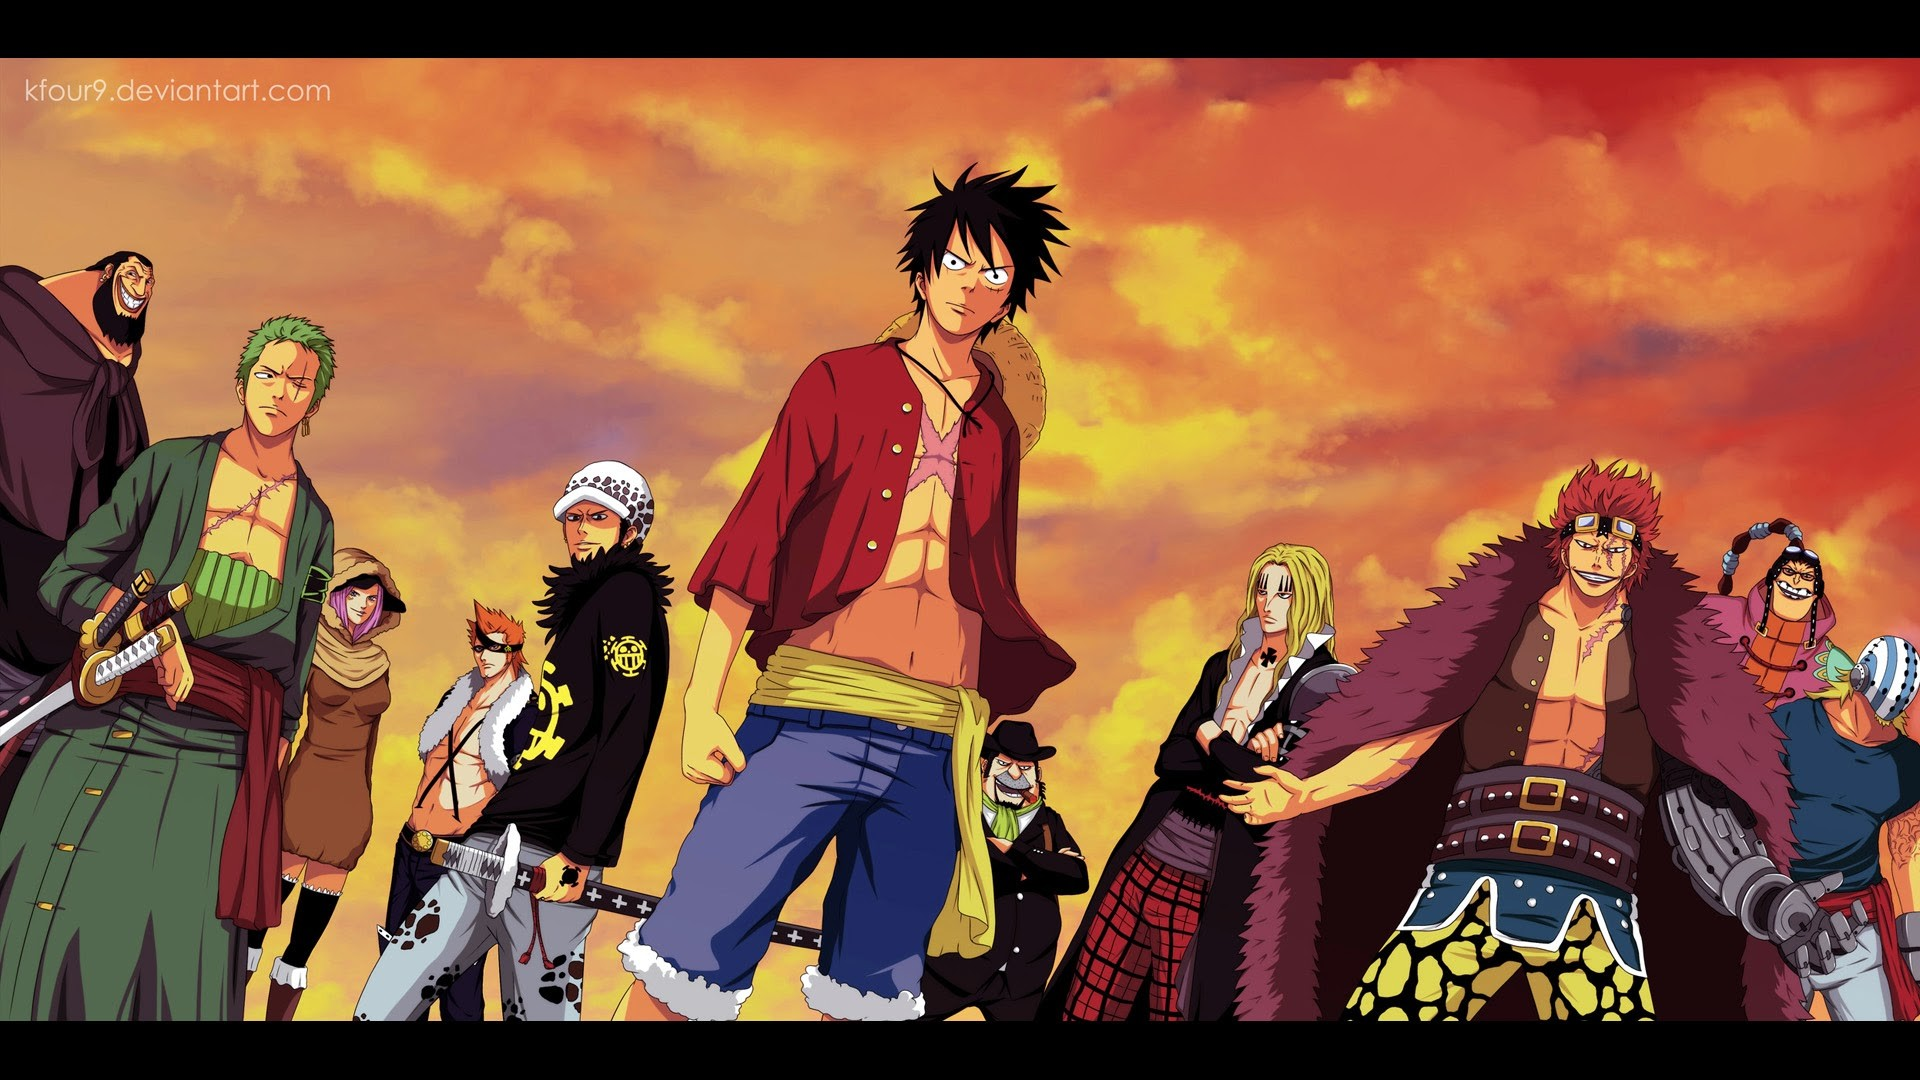 One Piece Wallpaper Hd Download Free Stunning High Resolution